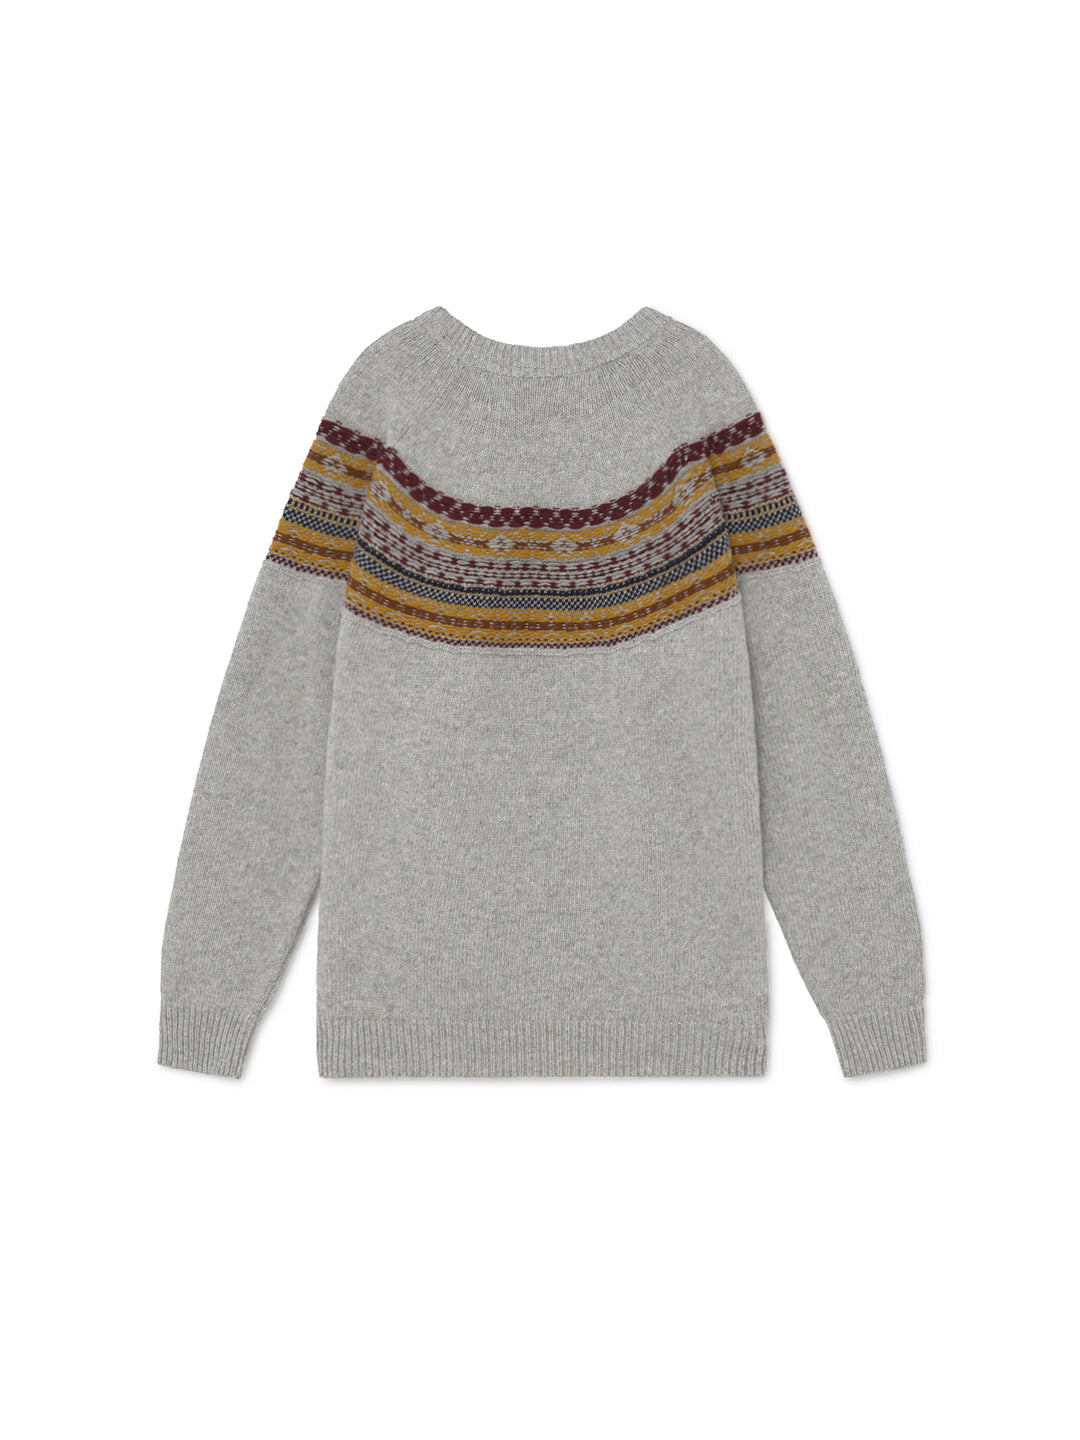 TWOTHIRDS Womens Knit: Mainland - Grey back